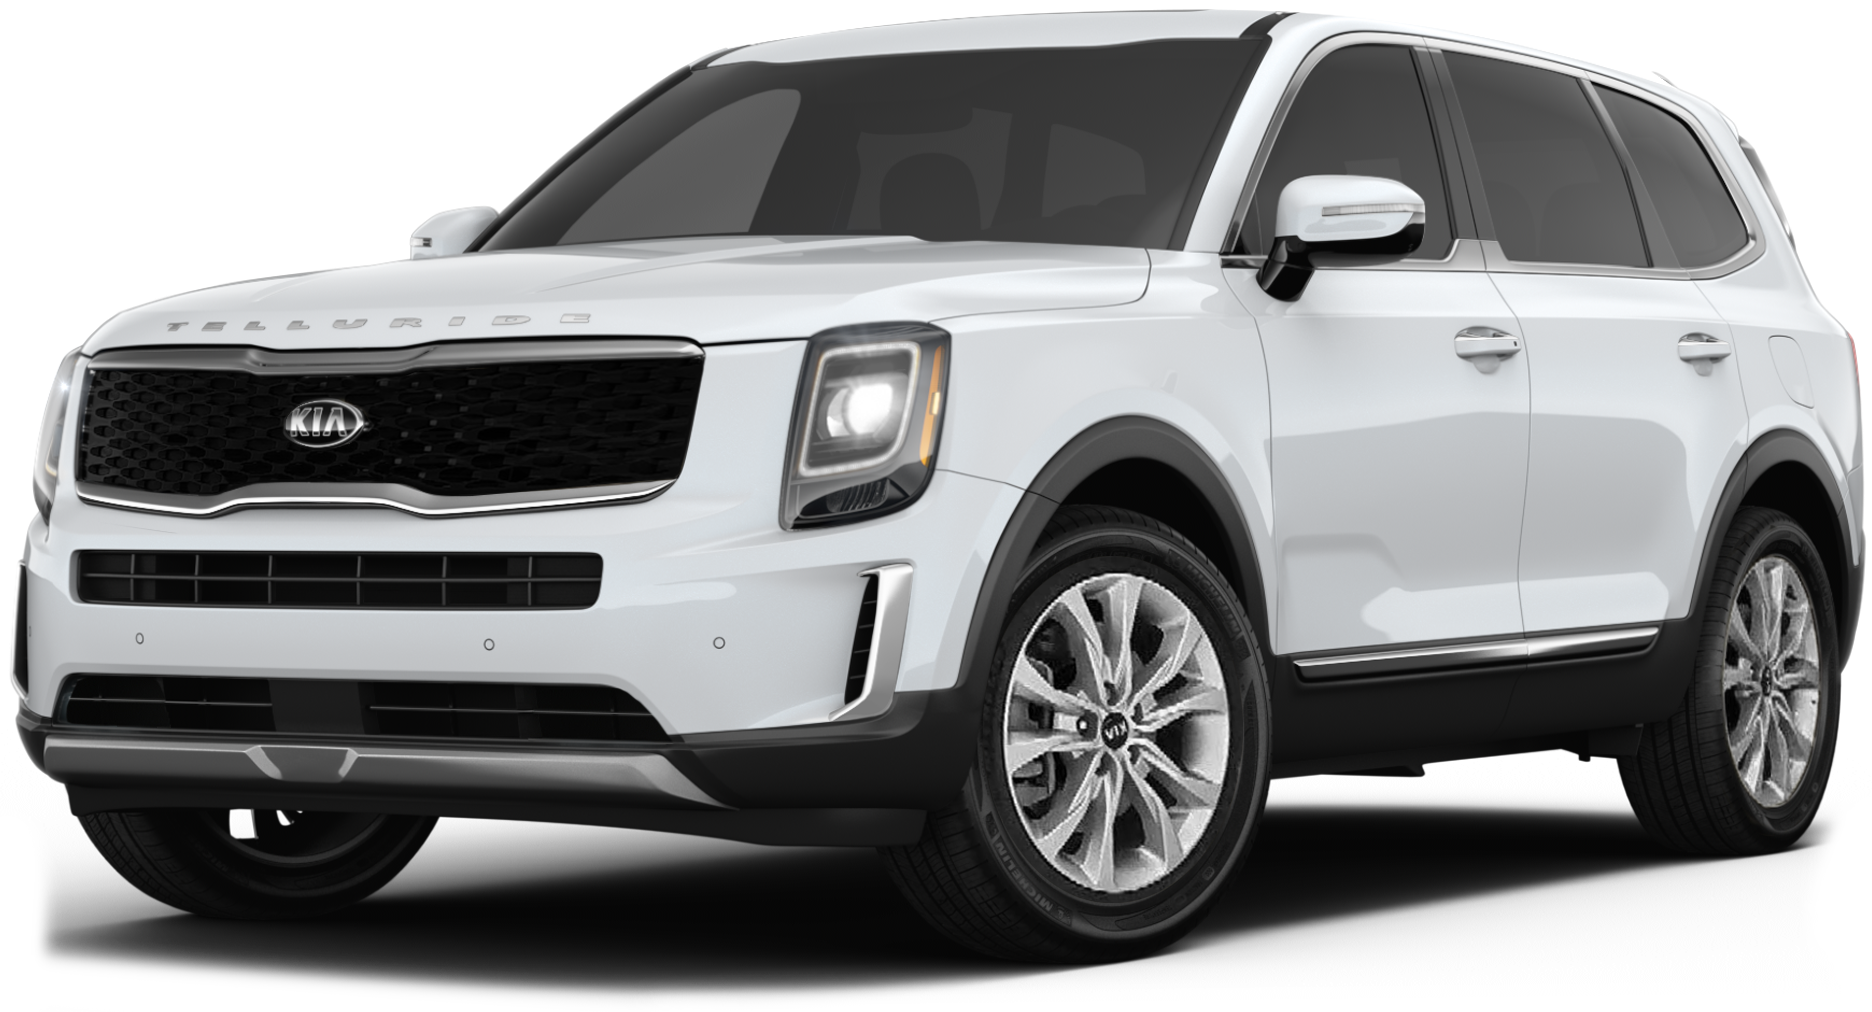 Kia Of Dartmouth >> 2020 Kia Telluride Incentives, Specials & Offers in Dartmouth MA